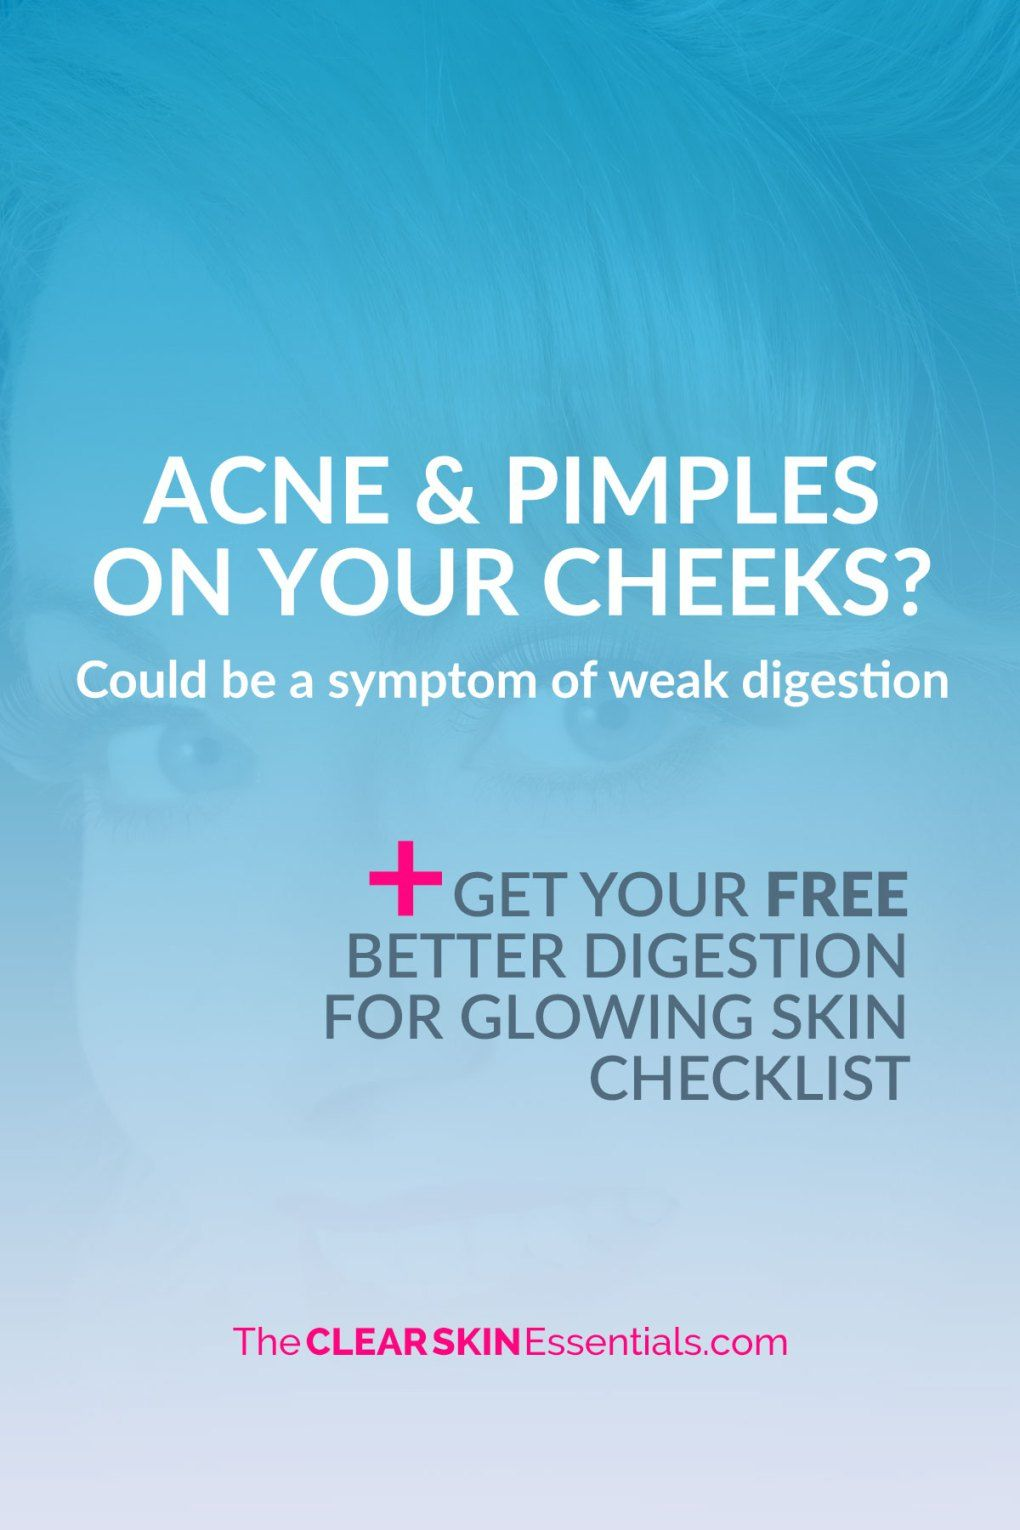 Why You're Getting Acne & Pimples On Your Cheeks Painful